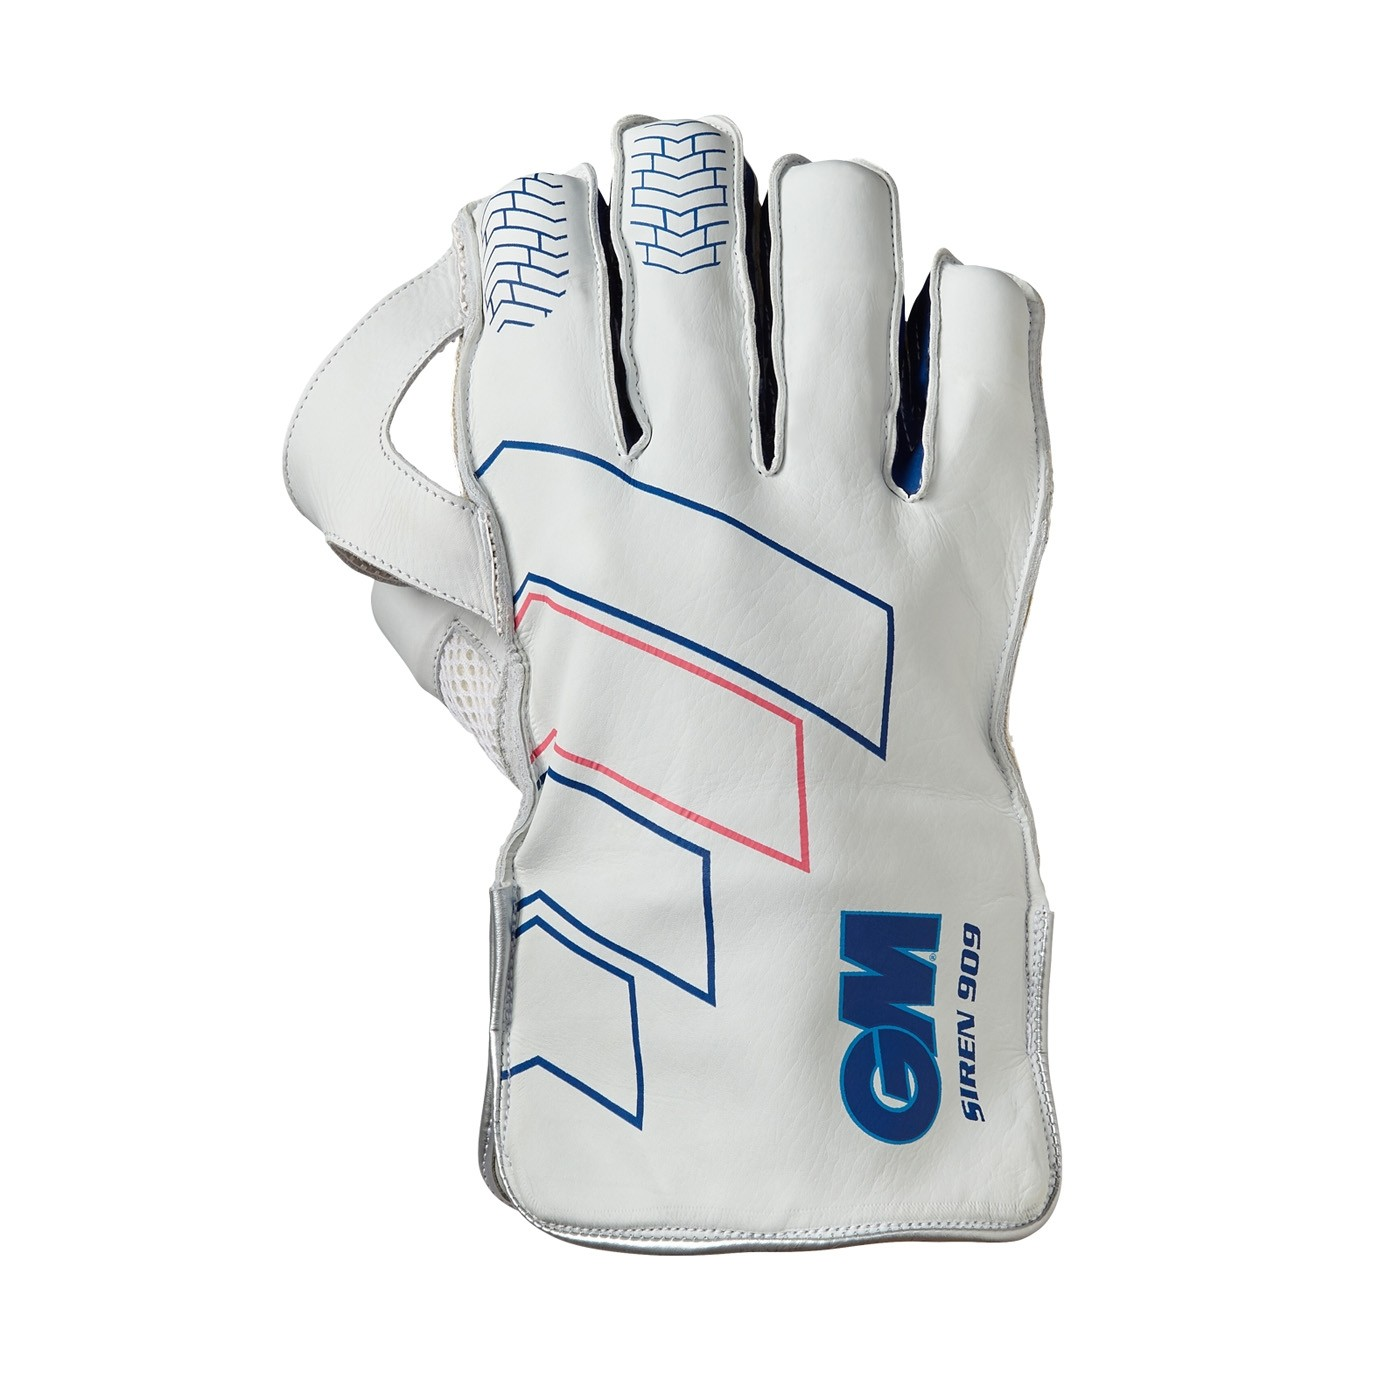 2021 Gunn and Moore Siren 909 Wicket Keeping Gloves